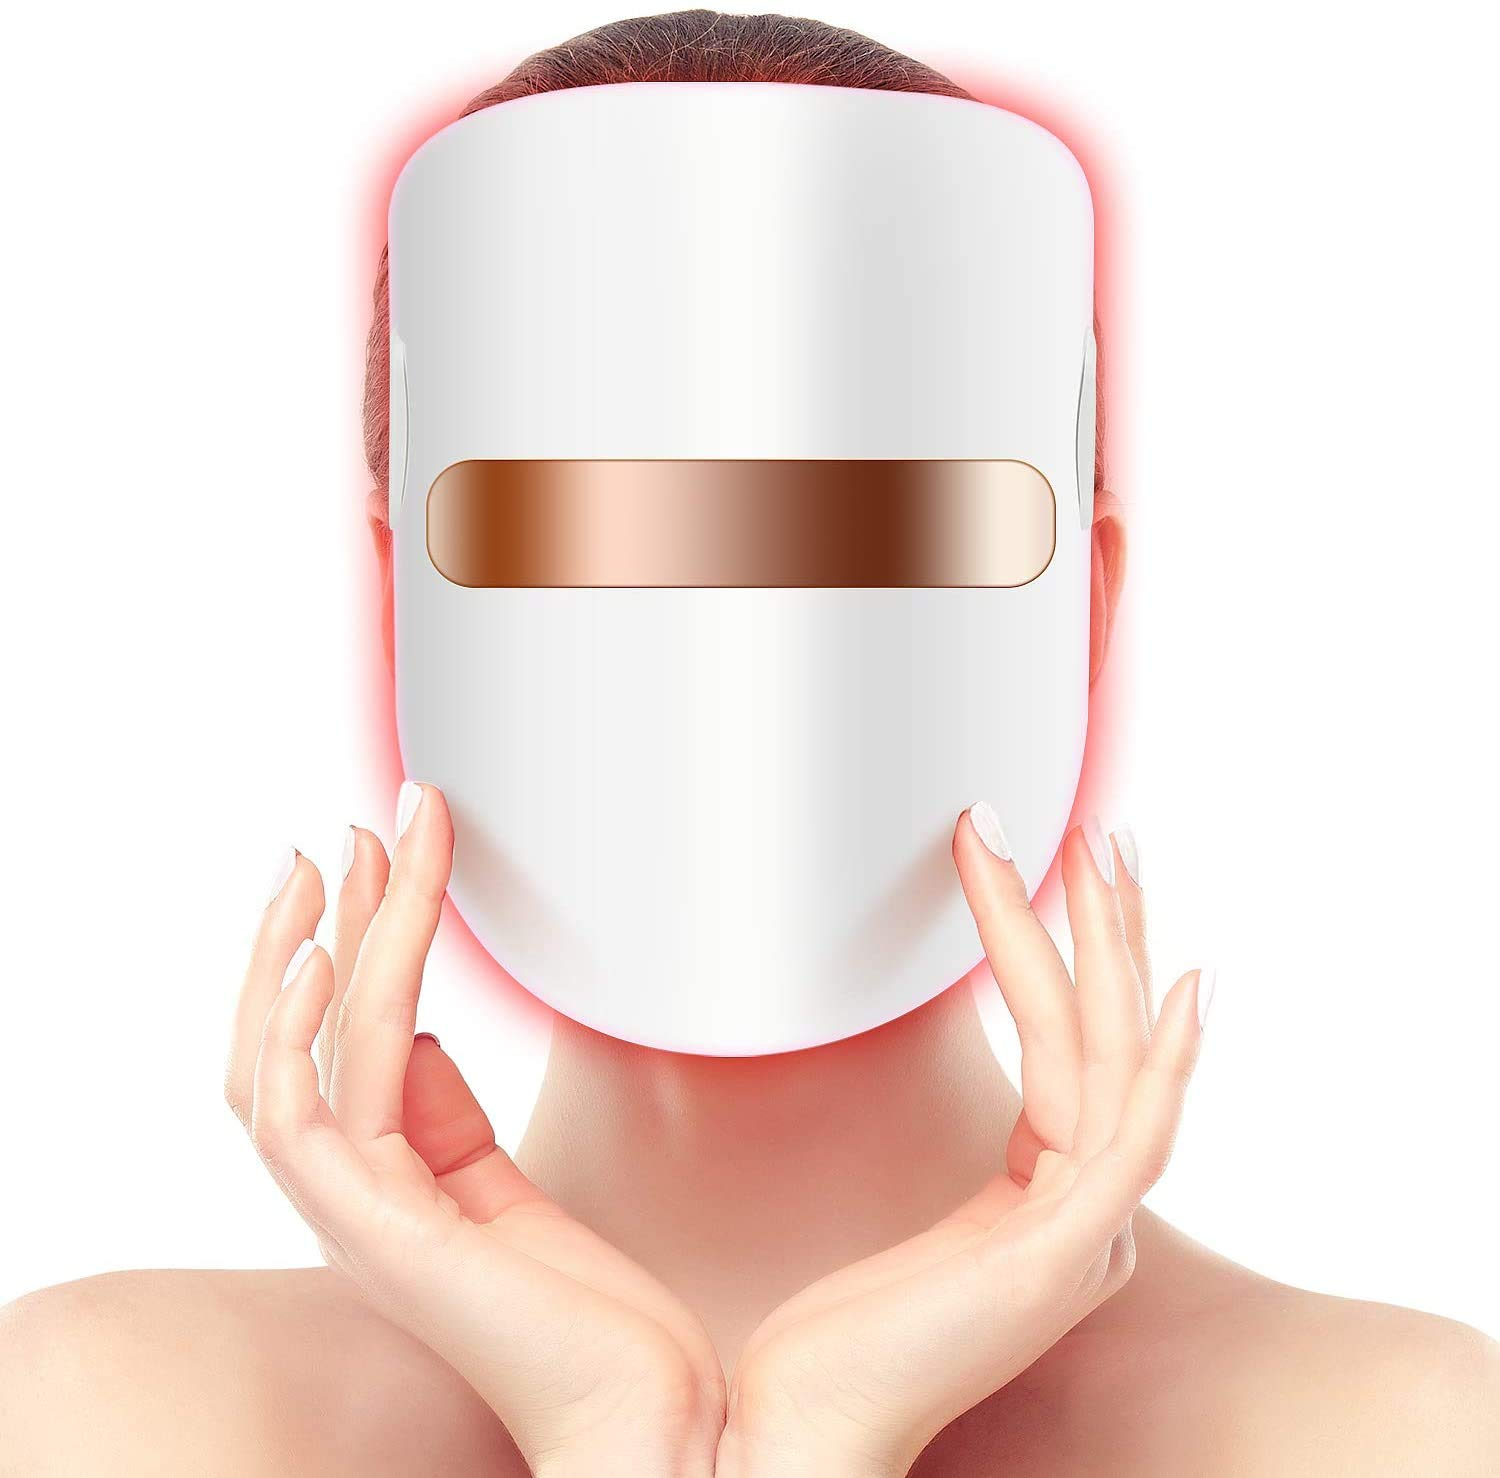 Hangsun Light Therapy Acne Treatment LED Mask FT350 Facial Therapy Unlimited Sessions for Acne Face Skin Treatment - Individually Lights of Red/Blue/Orange